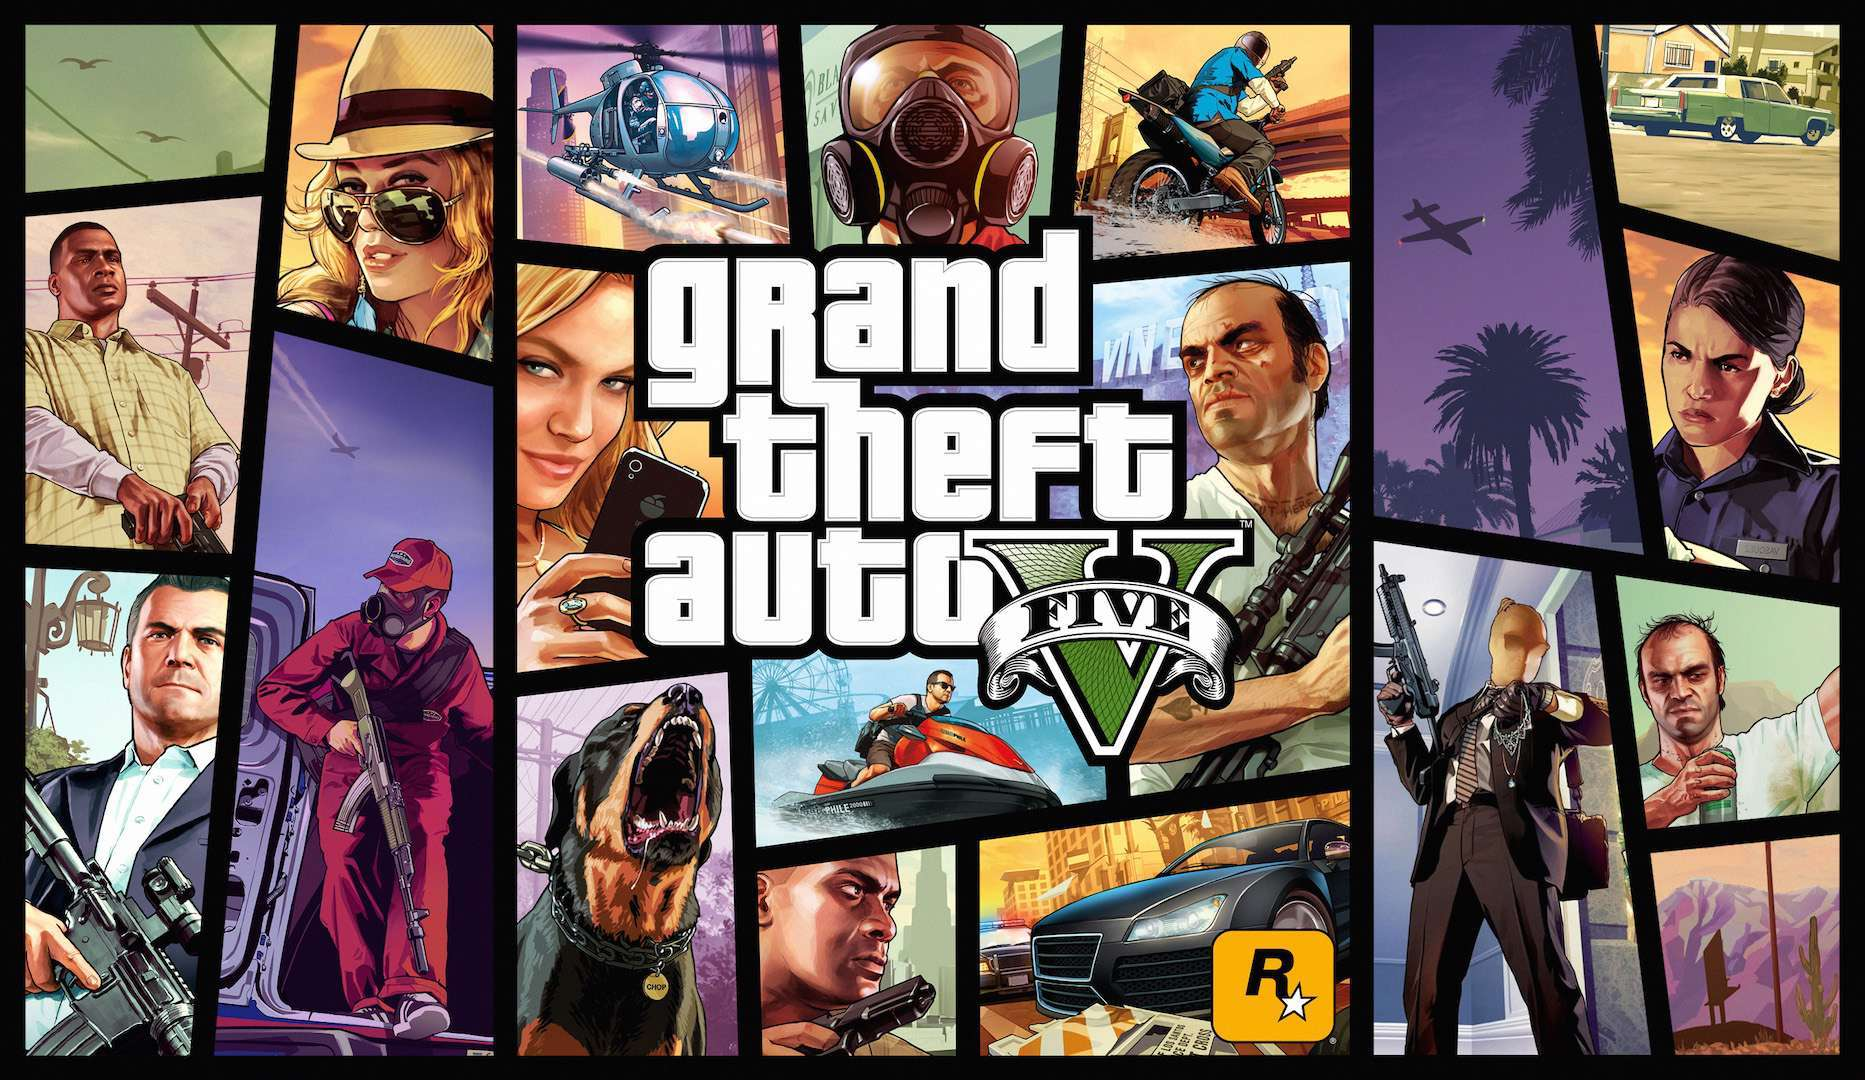 Grand Theft Auto V / GTA 5 (PC) [With MAIL/FULL ACCESS]